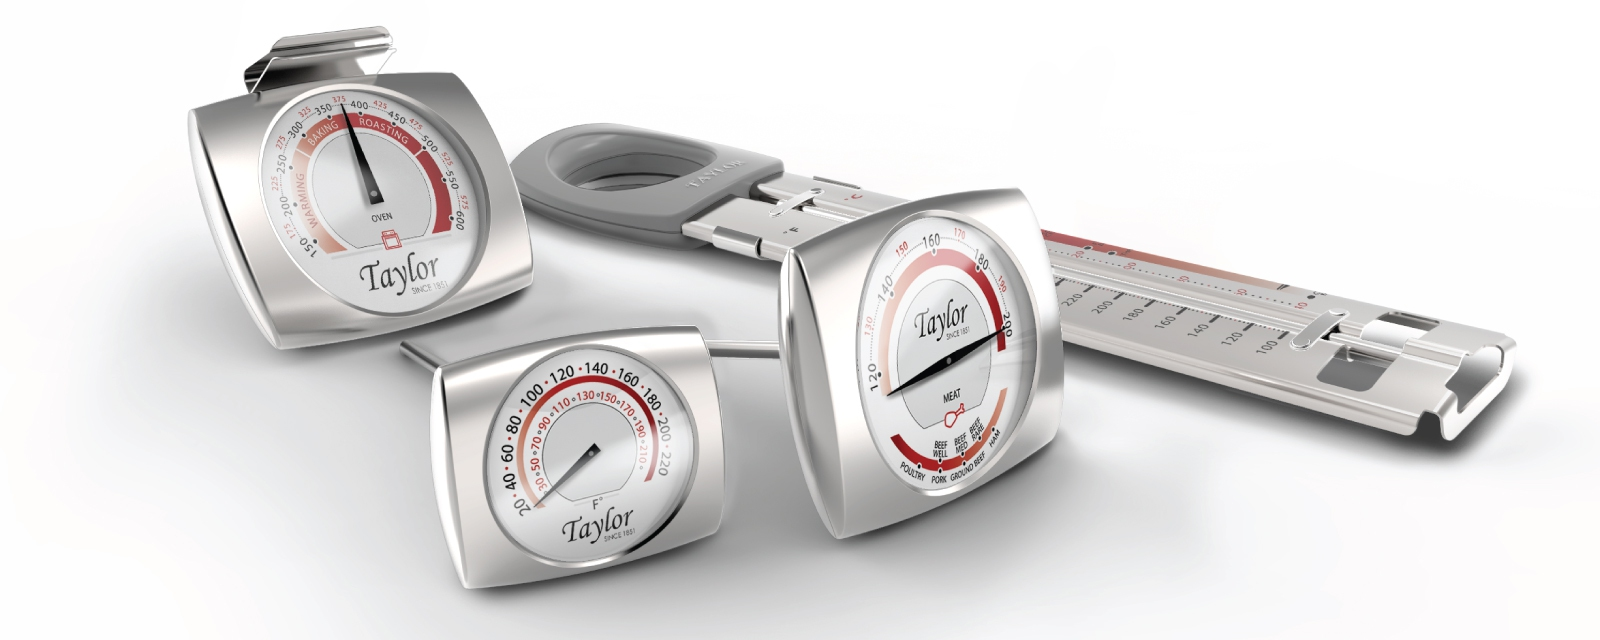 Taylor-Gourmet-Thermometers-banner (1).jpg